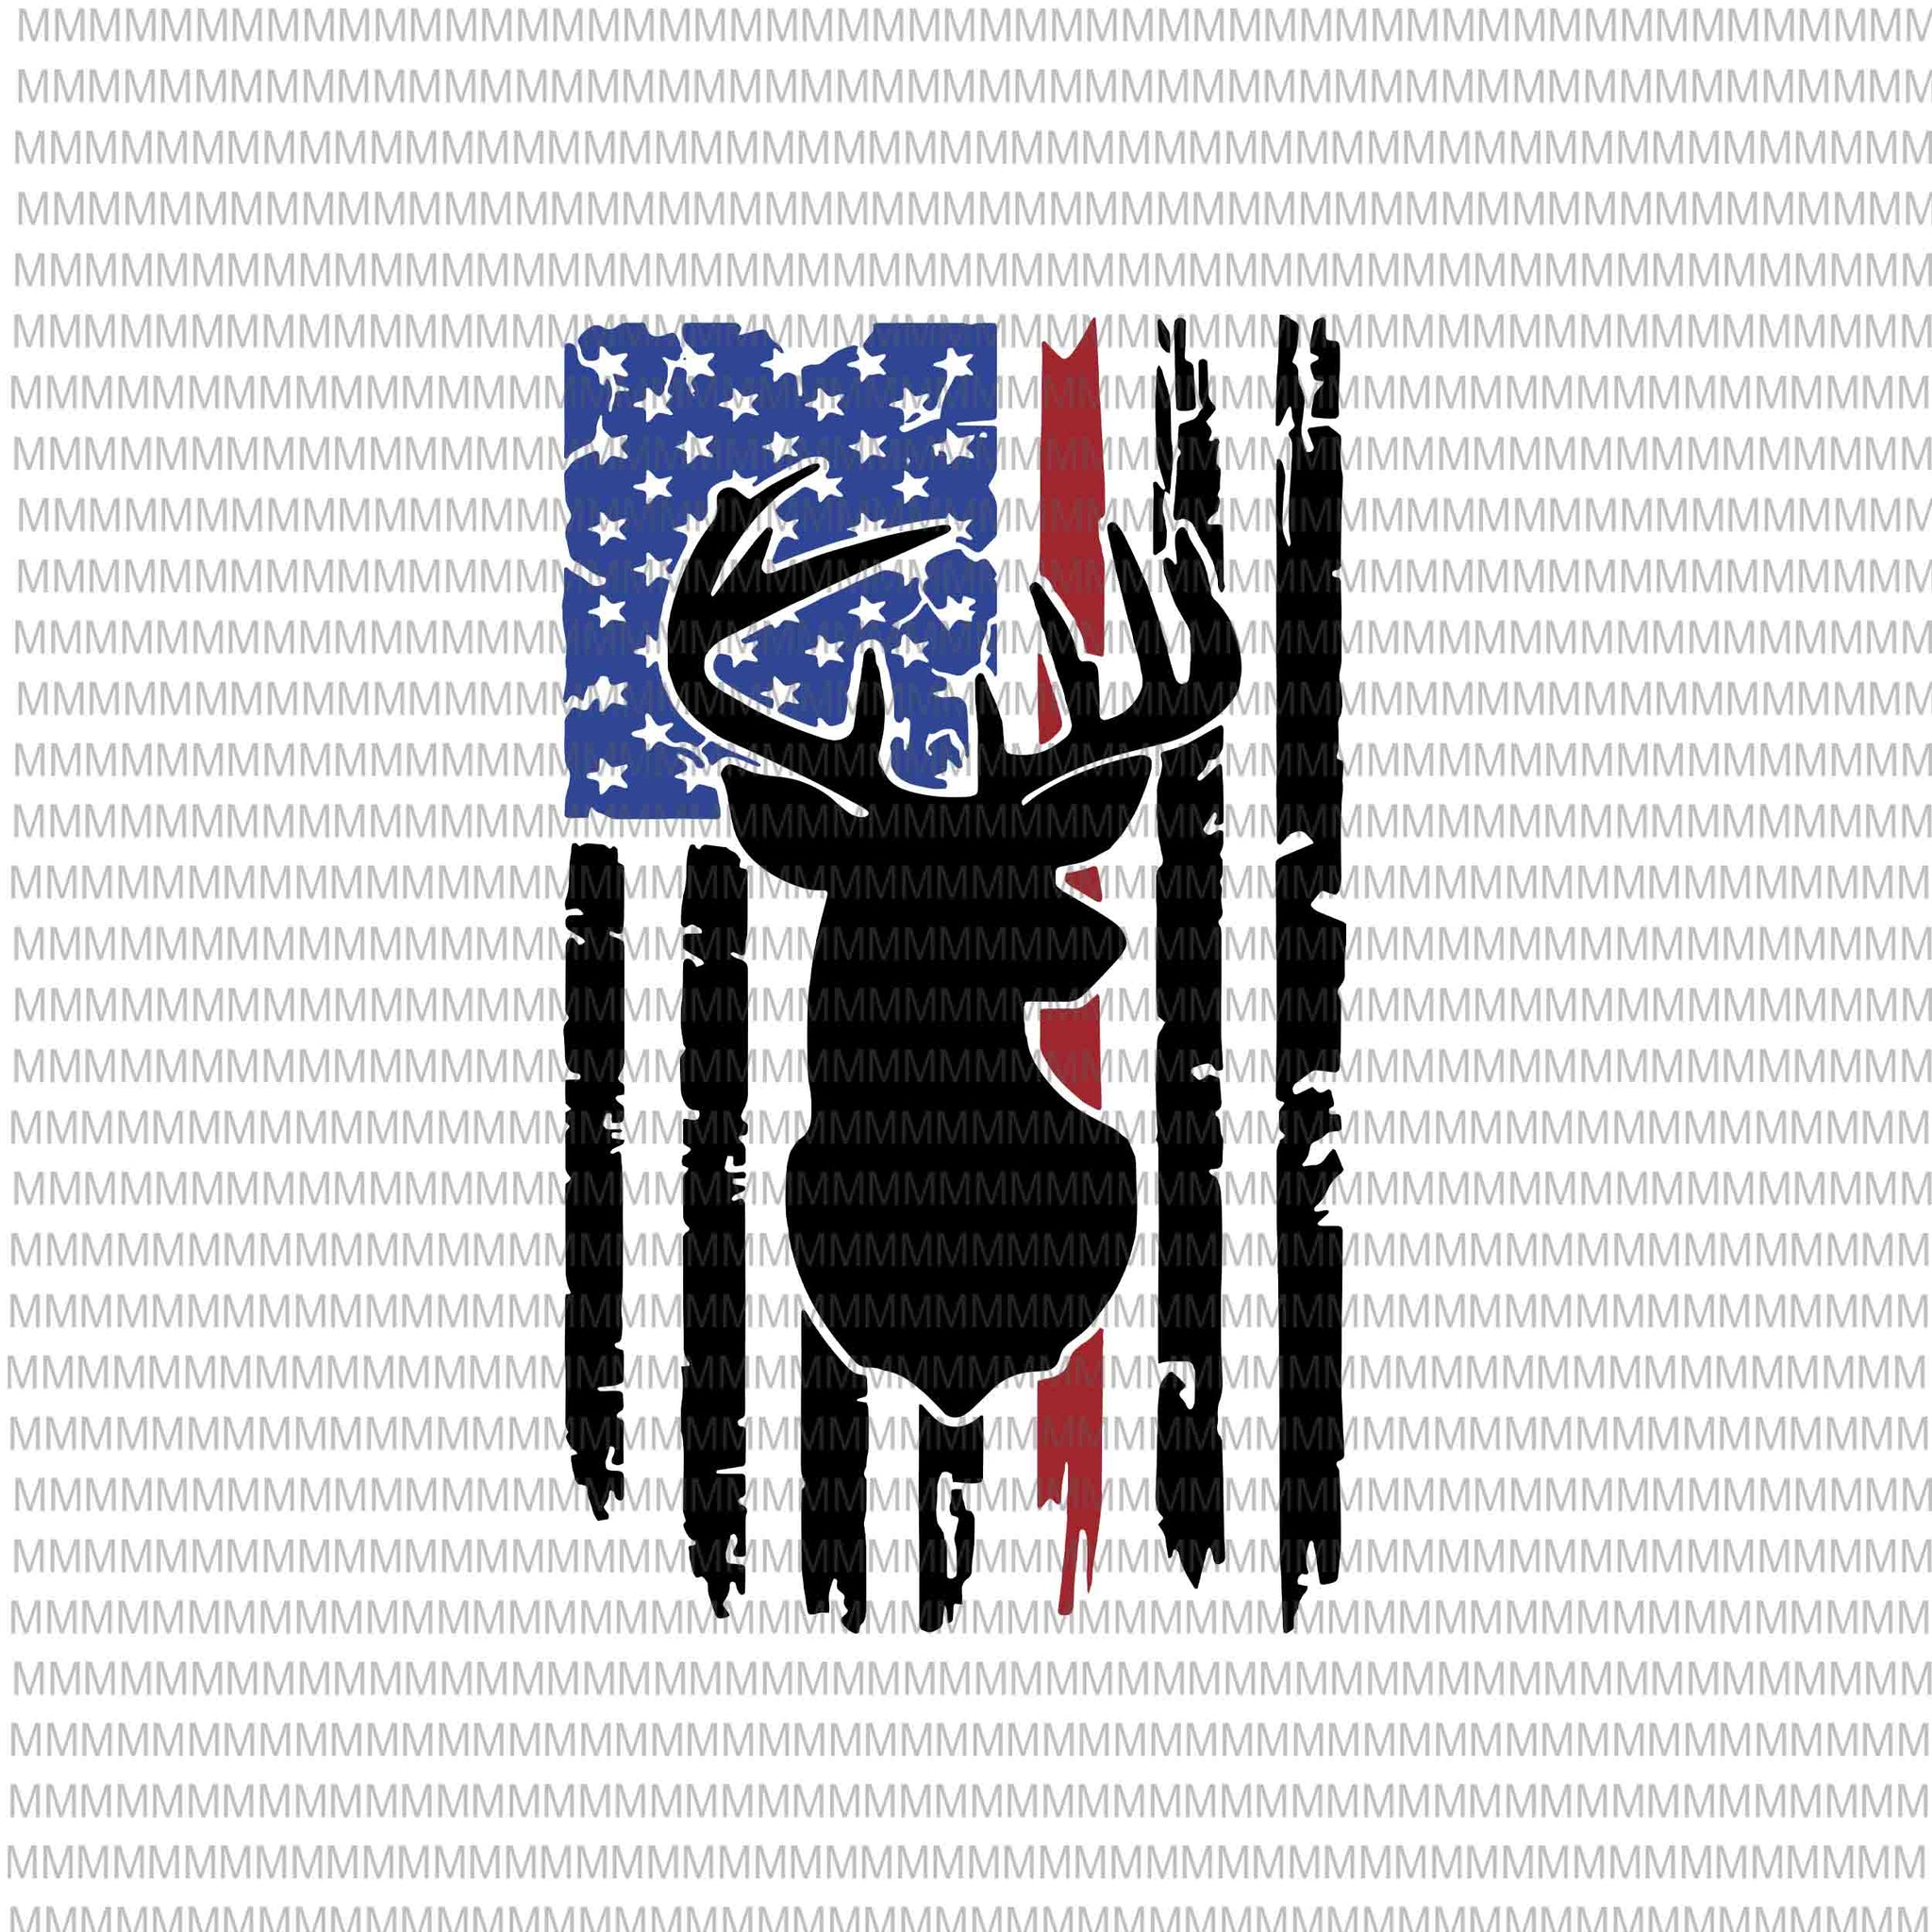 Deer hunt flag svg, 4th of July svg, Deer distressed flag svg, deer flag svg, deer svg, deer American flag svg, hunting deer svg